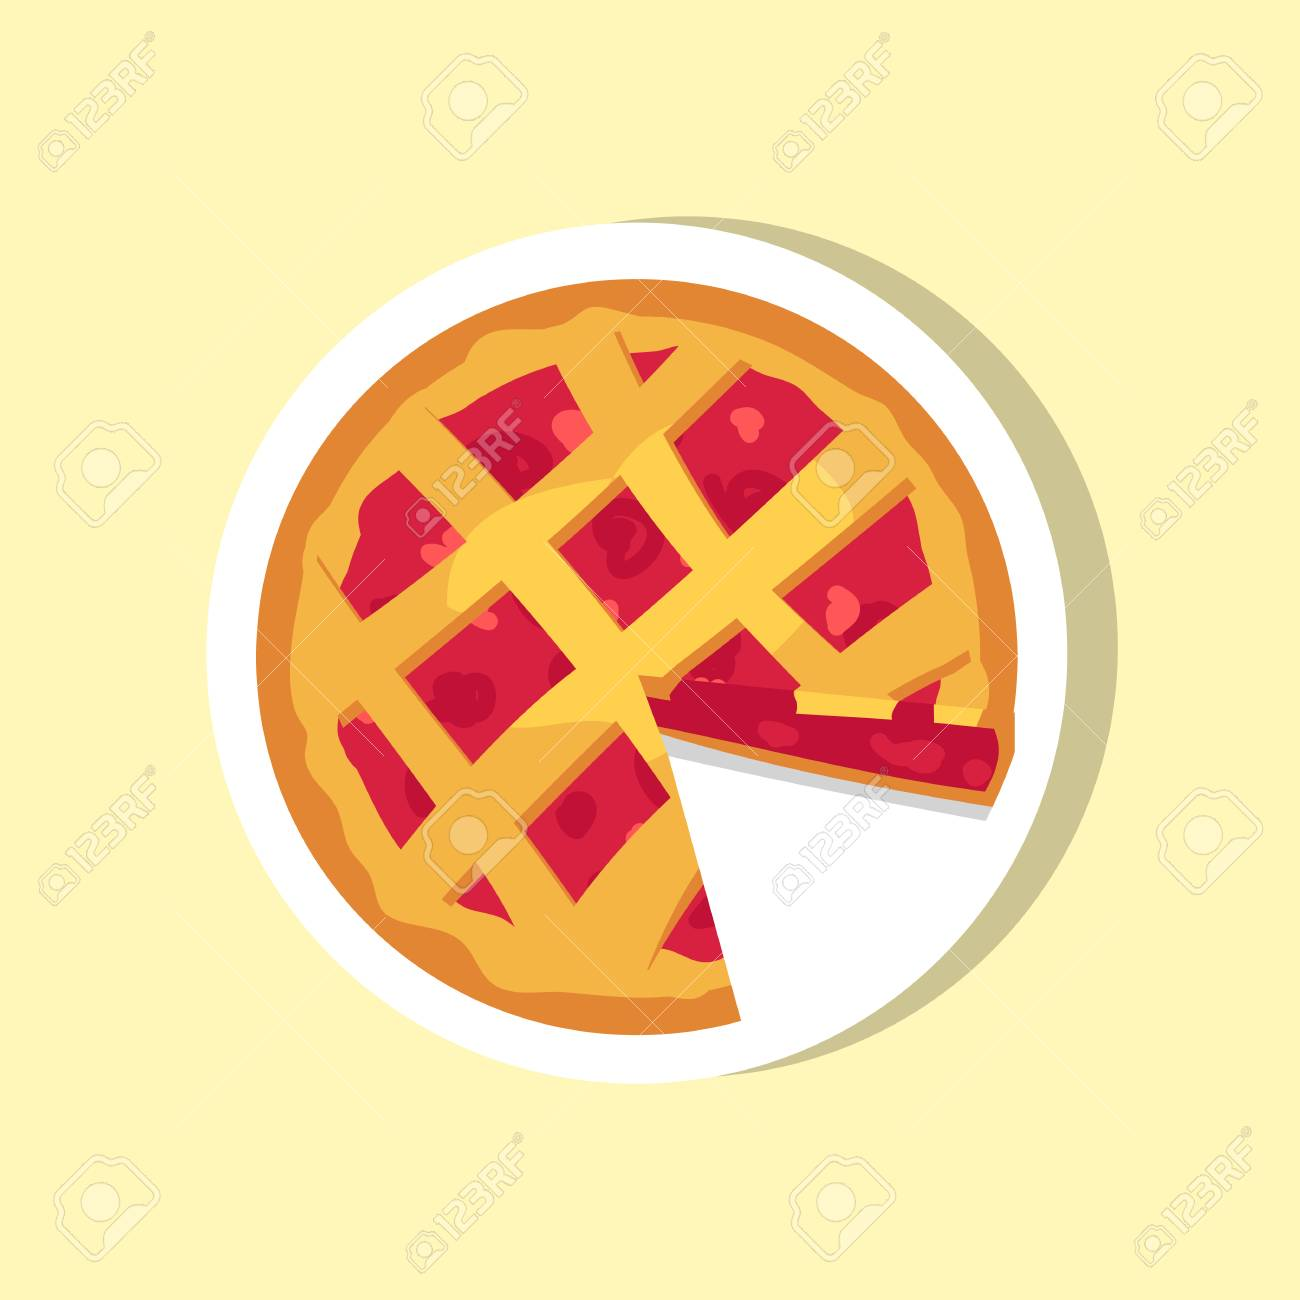 Cherry pie, cut piece of delicious cake vector illustration, sweet dessert in plate isolated on beige background. Strawberry dish with red tasty jam. - 110488047